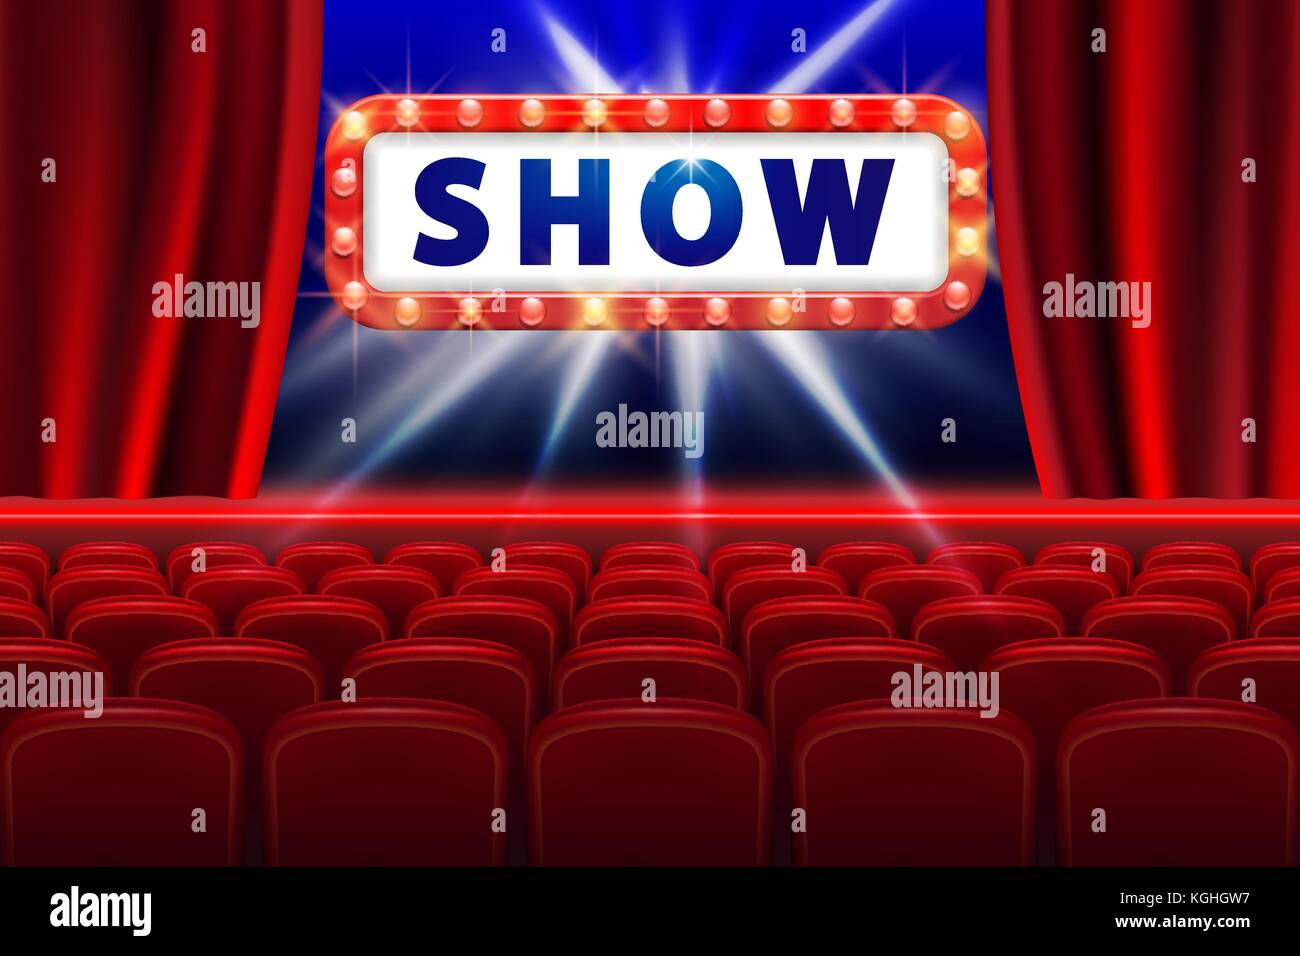 Cinema Show Design With Lights Scene And Red Seats Poster For Concert Party Theater Template Vector Illustration